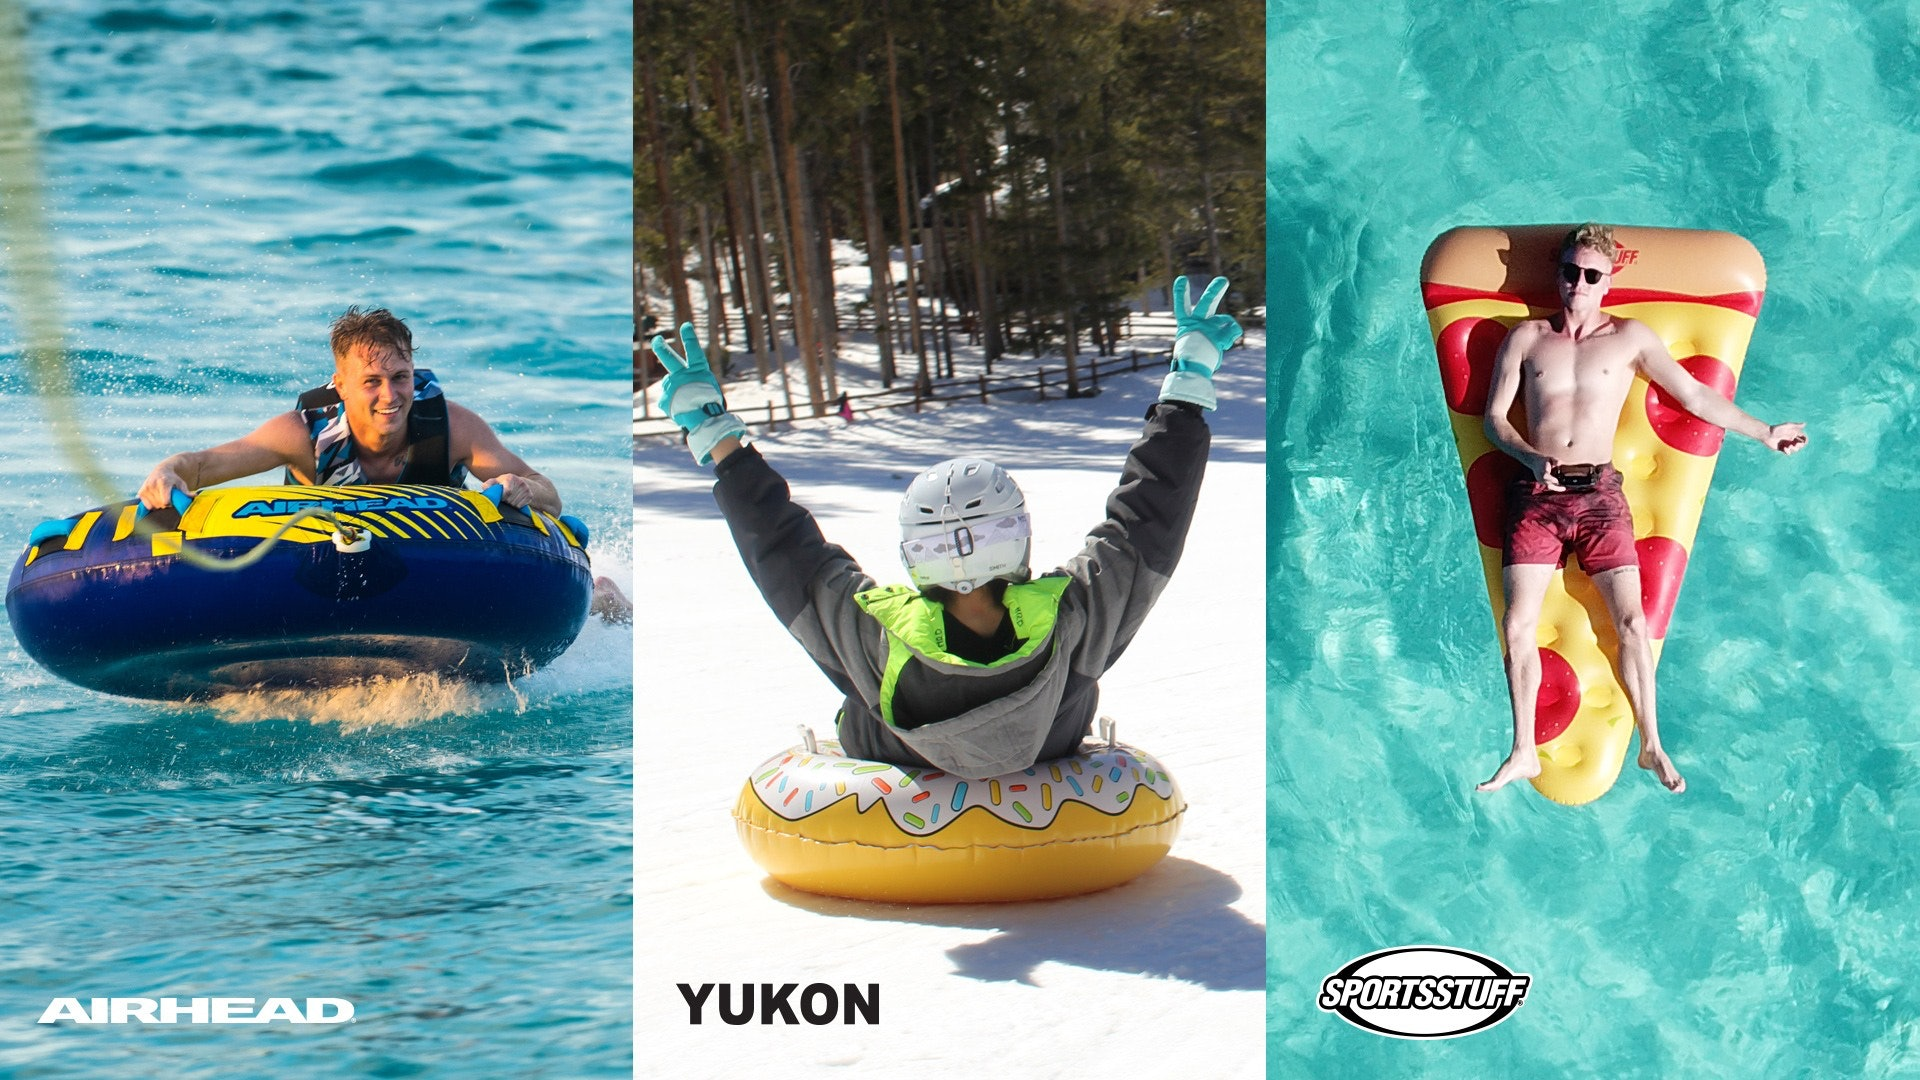 Airhead Yukon and Sportsstuff Brands